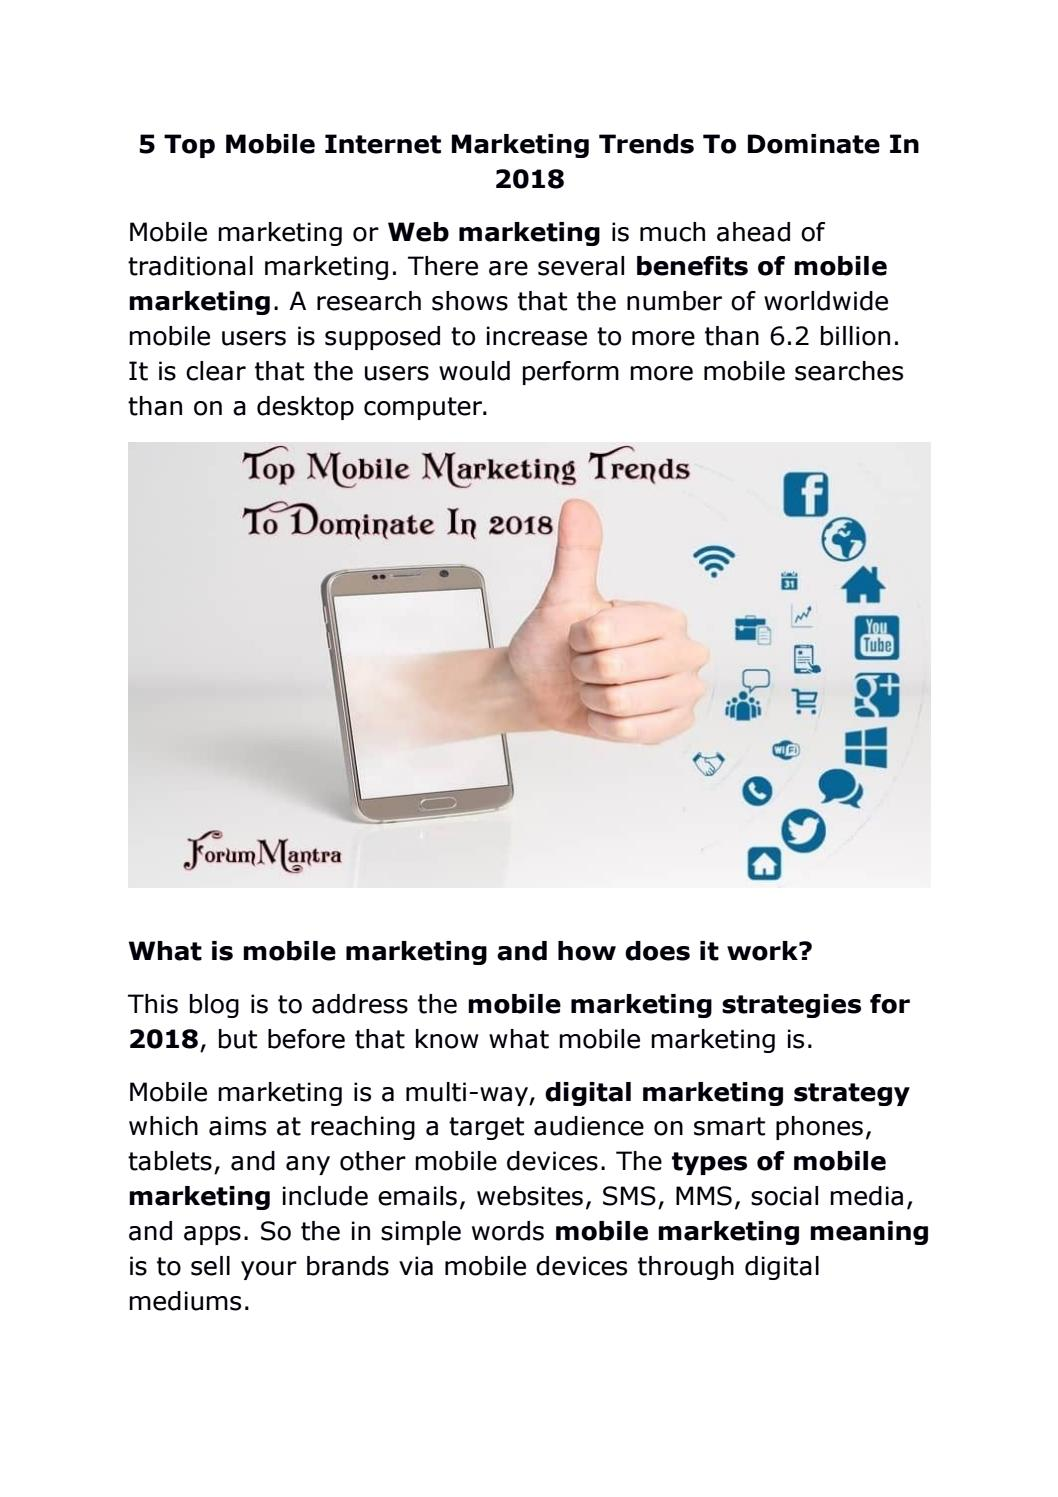 5 top mobile internet marketing trends to dominate in 2018